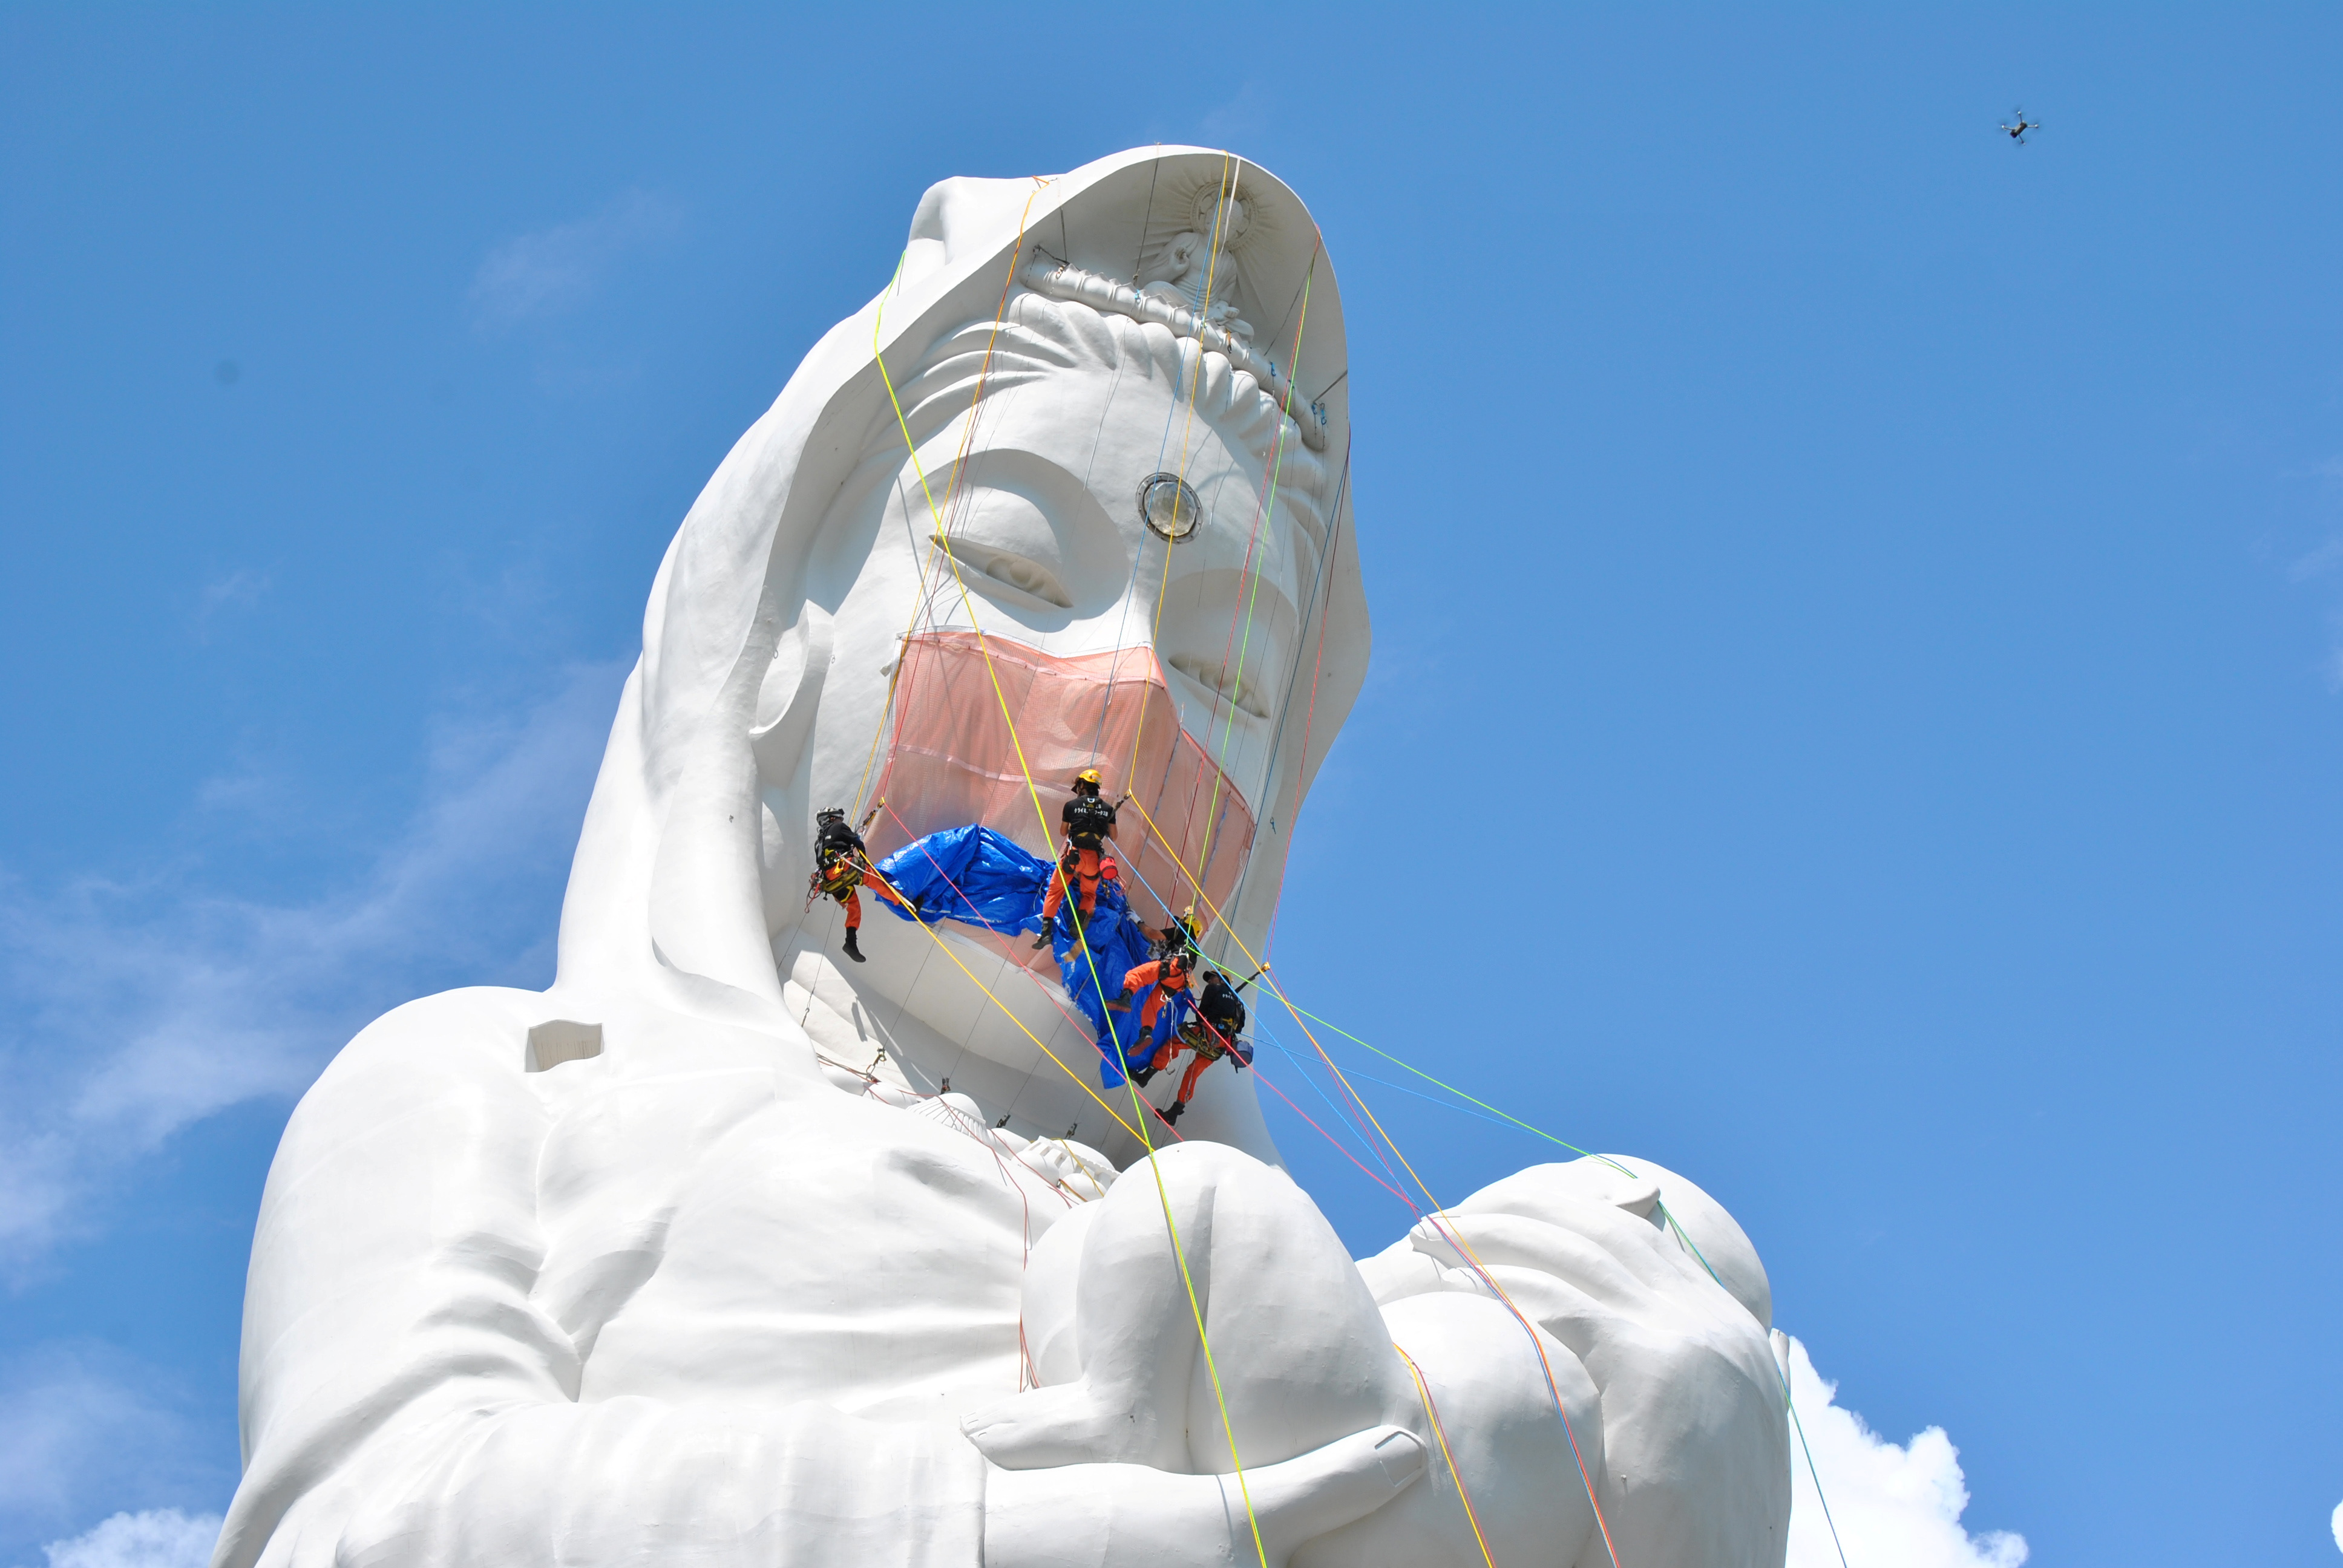 Workers place a mask on a 57-metre-high statue of Buddhist goddess Kannon to pray for the end of the coronavirus disease (COVID-19) pandemic at Houkokuji Aizu Betsuin temple in Aizuwakamatsu, Fukushima Prefecture, Japan in this handout photo taken on June 15 2021. Picture taken on June 15, 2021. Houkokuji Aizu Betsuin/Handout via REUTERS   ATTENTION EDITORS - THIS IMAGE HAS BEEN SUPPLIED BY A THIRD PARTY. NO RESALES. NO ARCHIVES. MANDATORY CREDIT